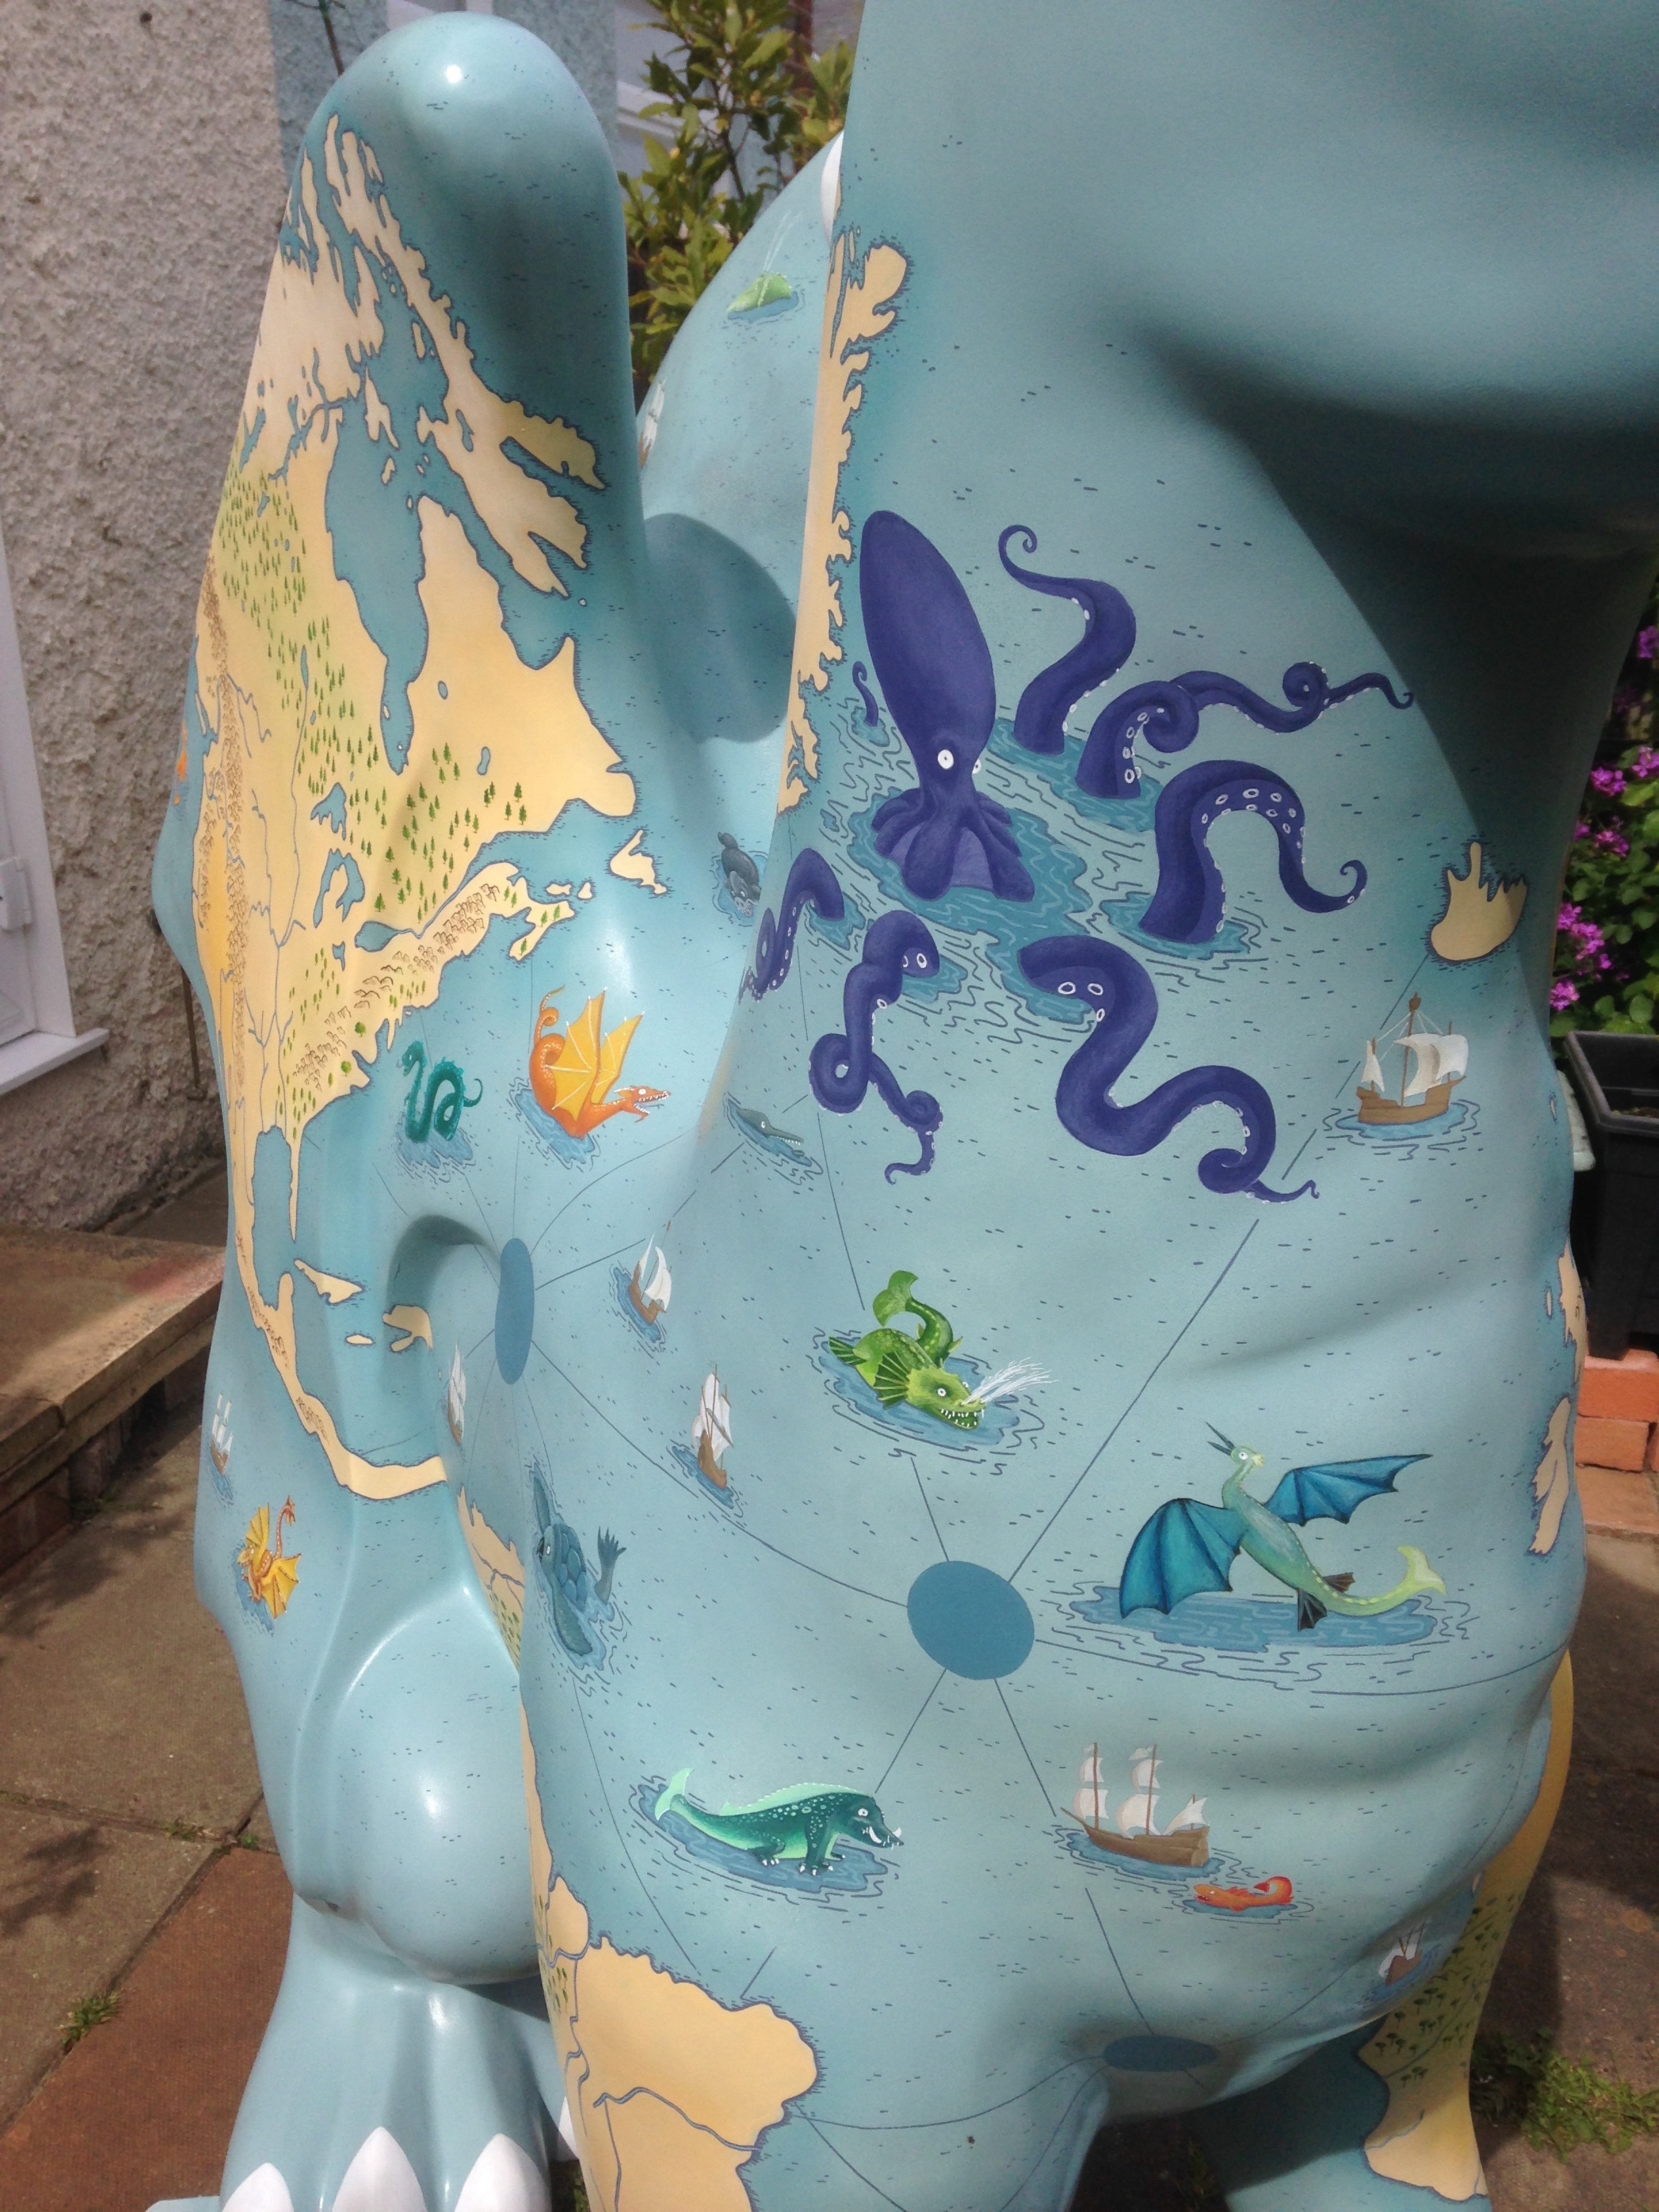 Close up of pained sea monsters on a Dragon sculpture painted with an illustrated map of the world. By Fiona Gowen. Part of the GoGoDragons! Trail in Norwich in 2015